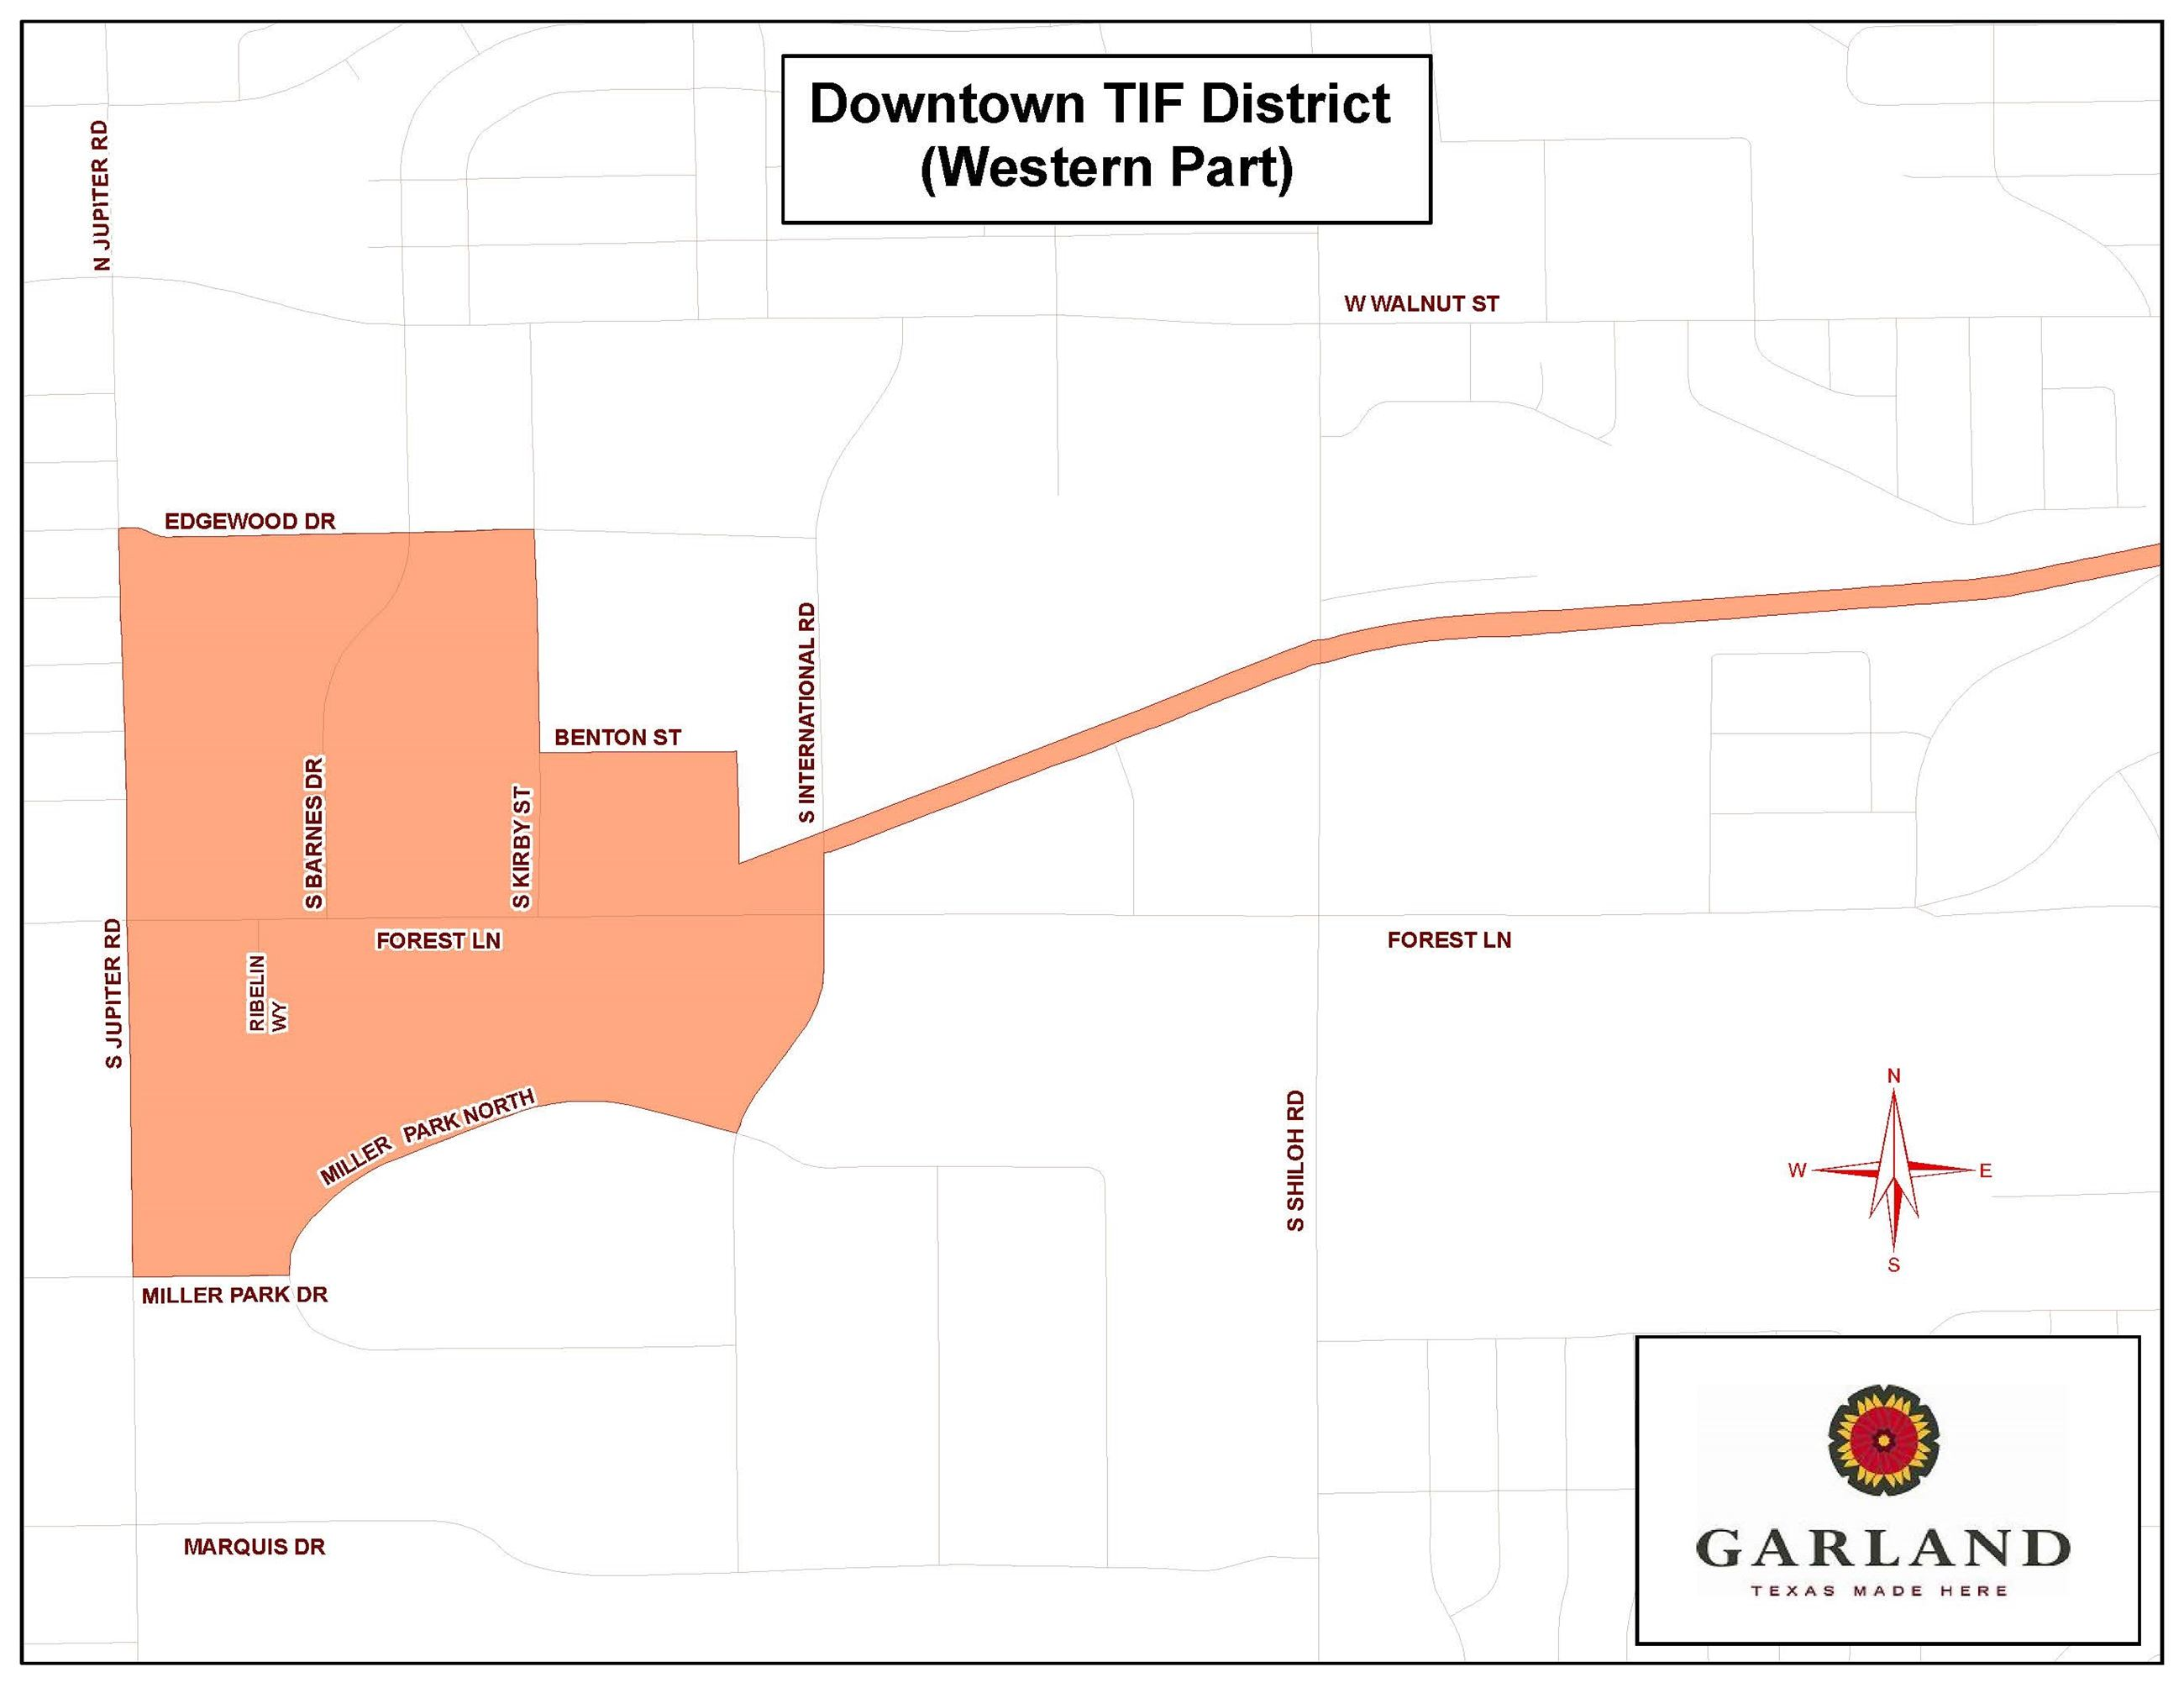 Downtown Tax Increment Financing District - Western Map (JPG)